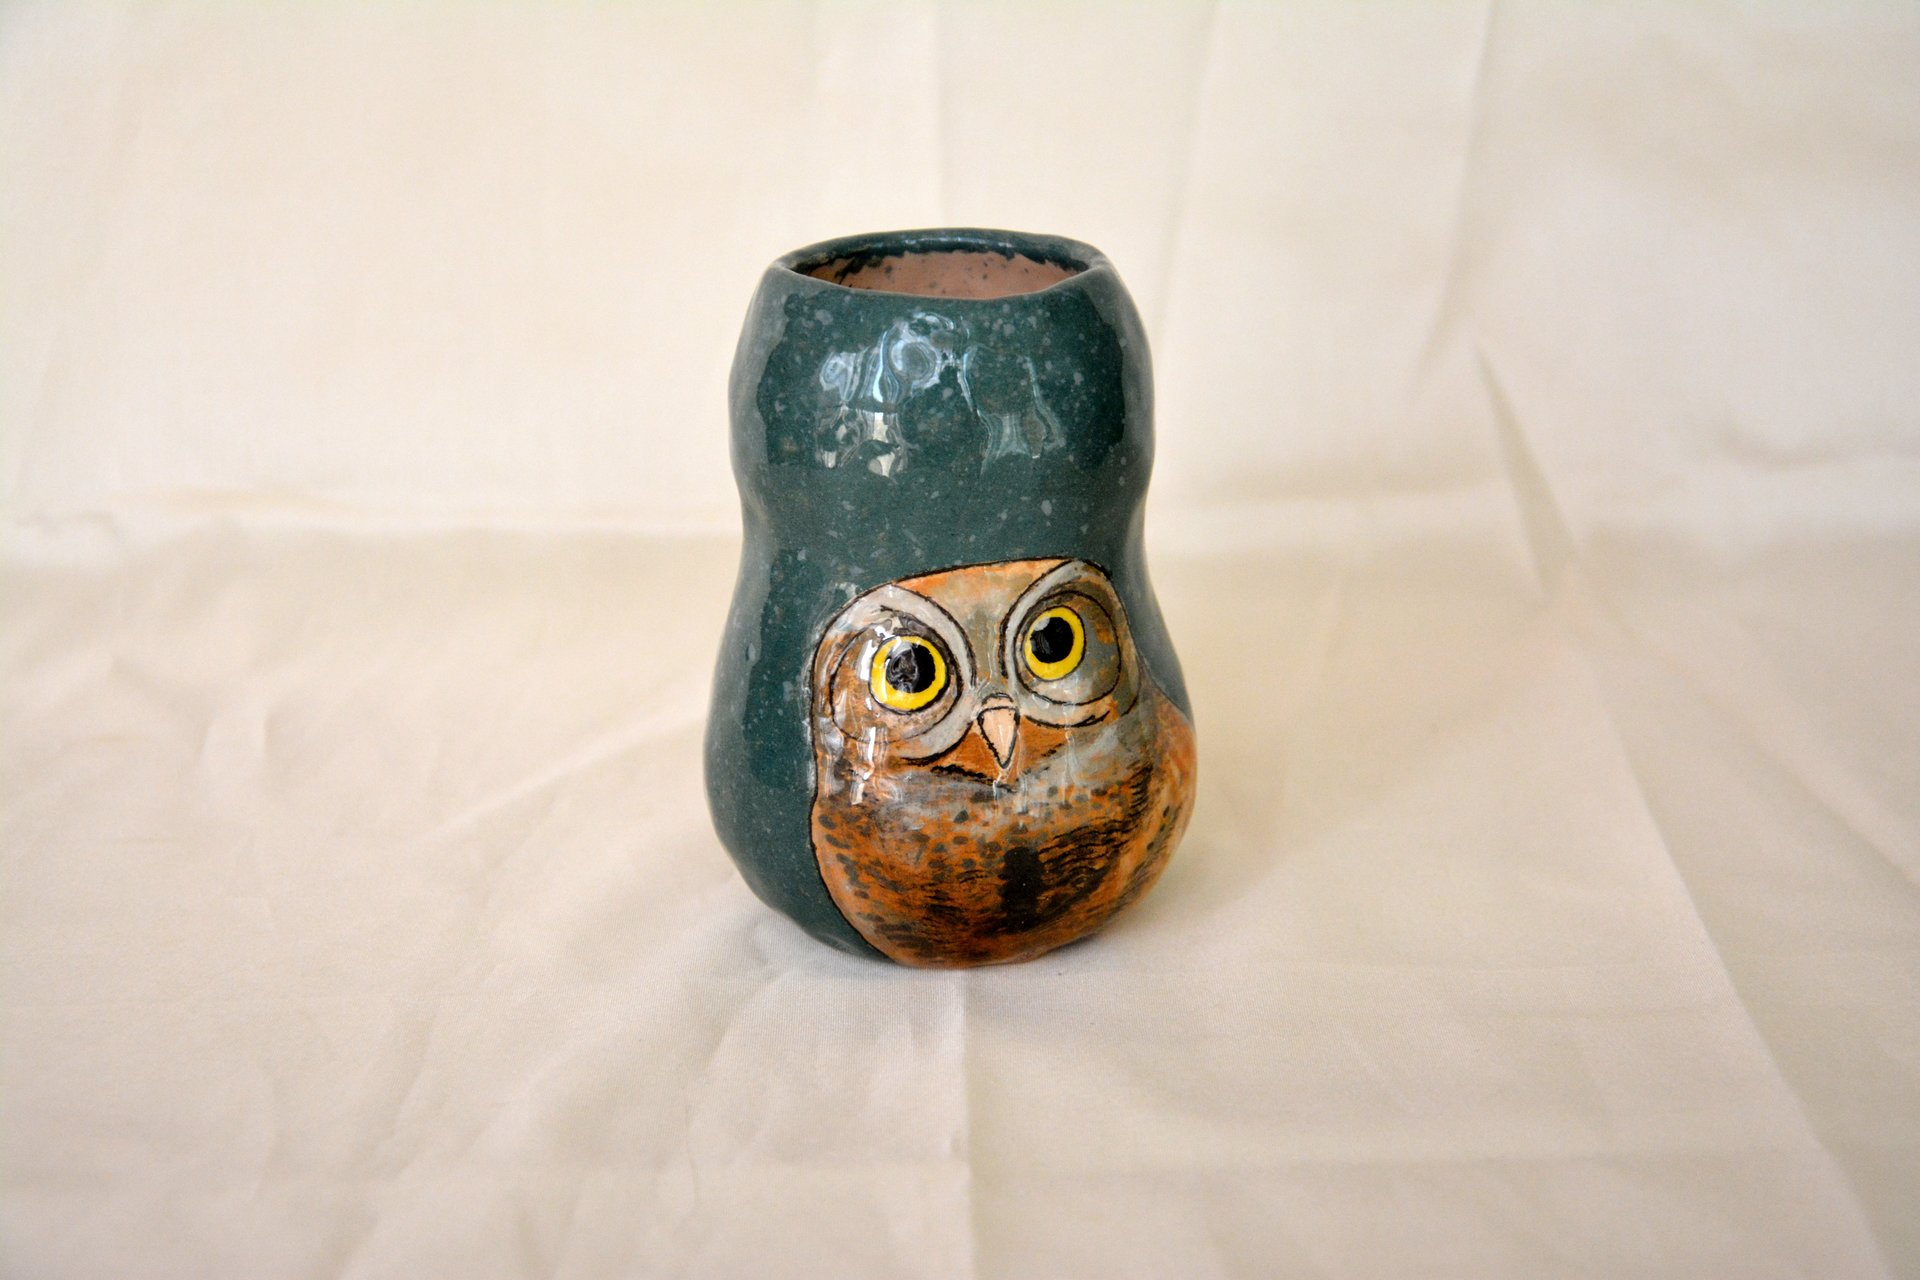 Small Vase or flowers «Sweet Owlet», height - 11 cm. Photo 17.